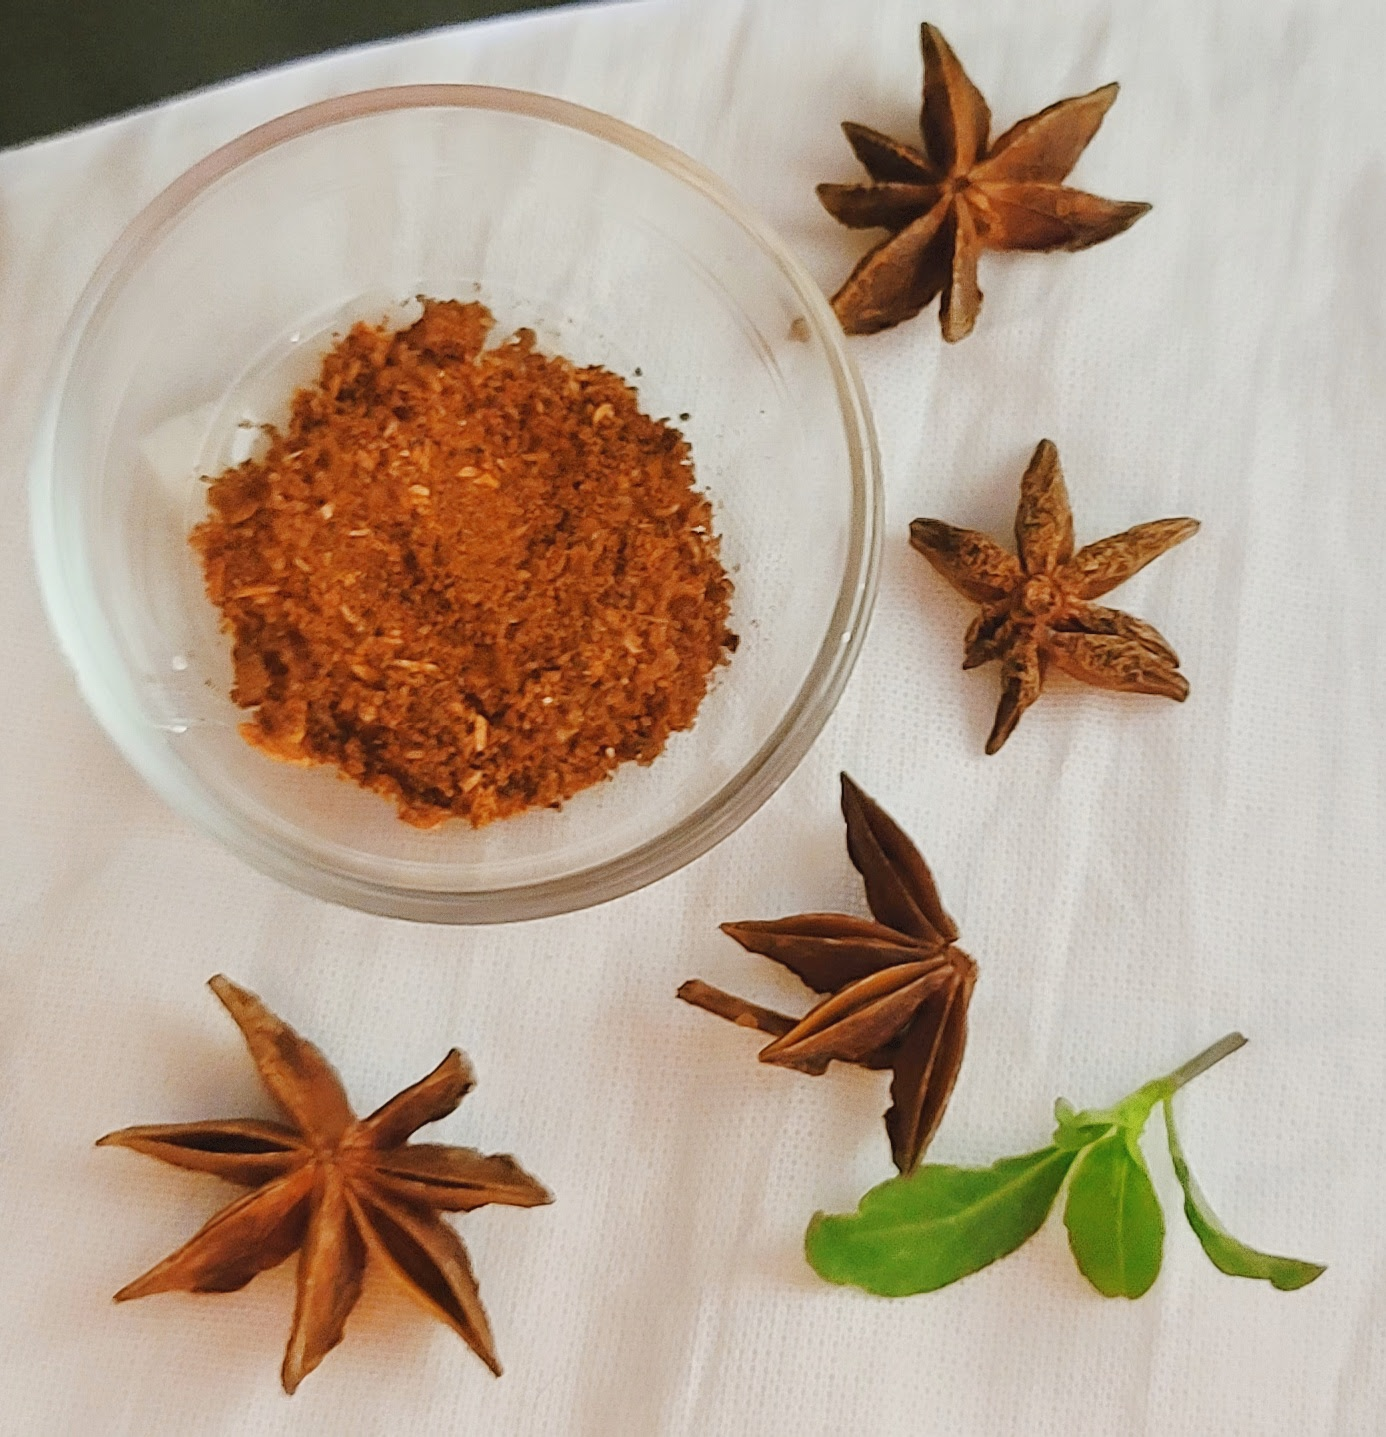 The Ground Star Anise spice in a small bowl